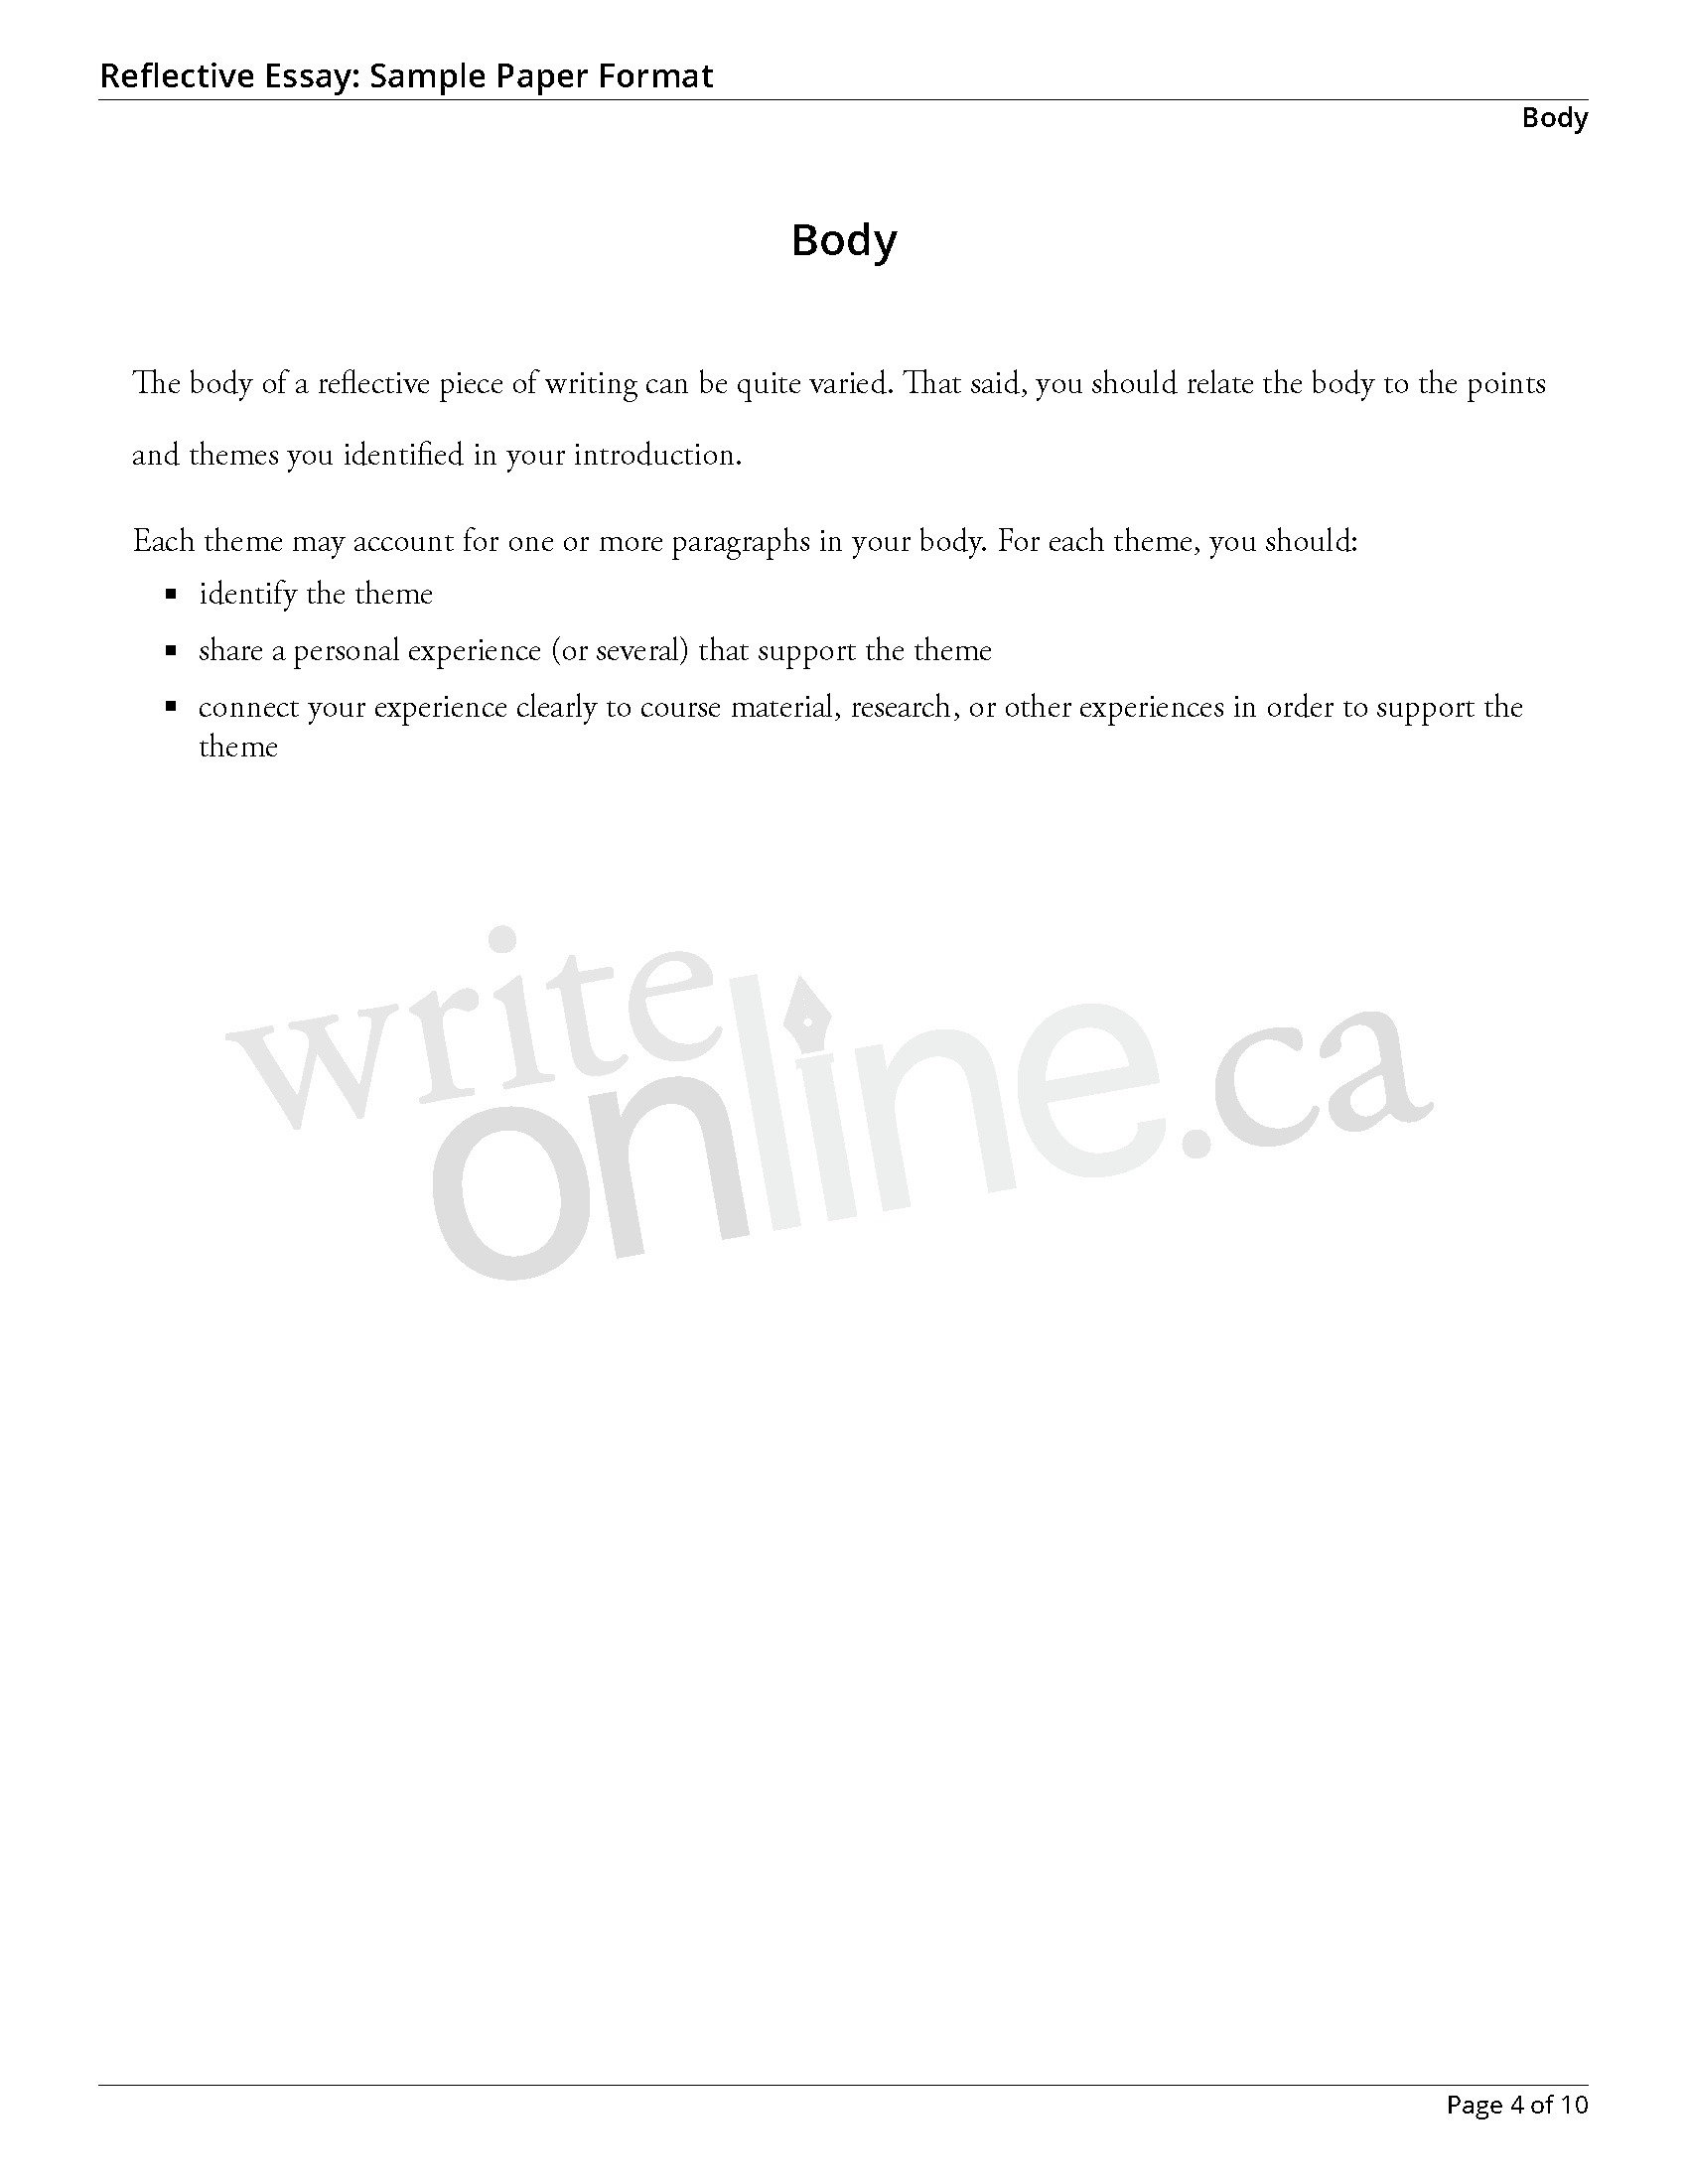 027 Sample Of Reflective Essay In Nursing Personal Admissions Reflectiveessay P Mentorship Australia For Scholarship Career Ethics Narrative School Uk Dreaded Questions Interesting Samples Spm Full